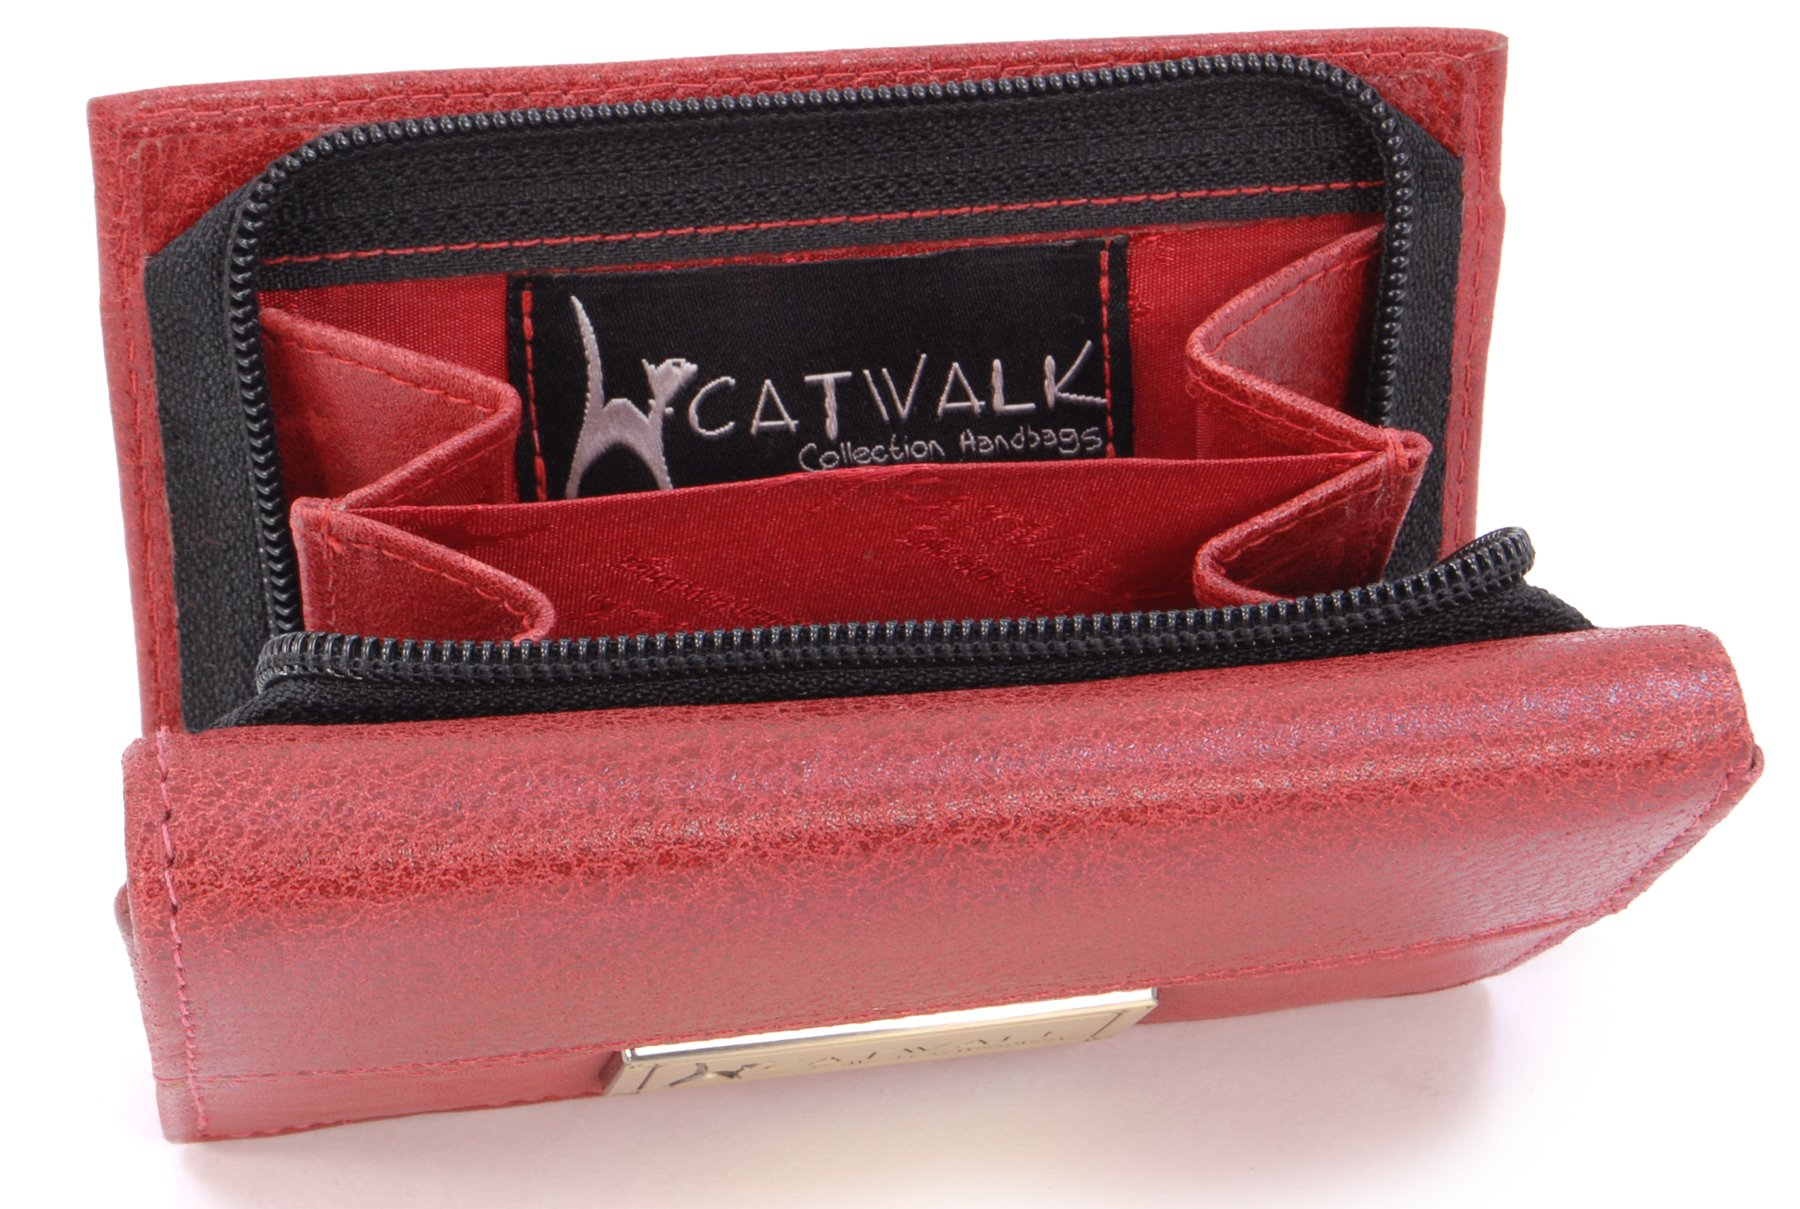 Catwalk Collection - Ladies Luxury Large Trifold Purse With Gift Box - Real Leather RFID - Credit Card Wallet and Coin Compartment - VICTORIA